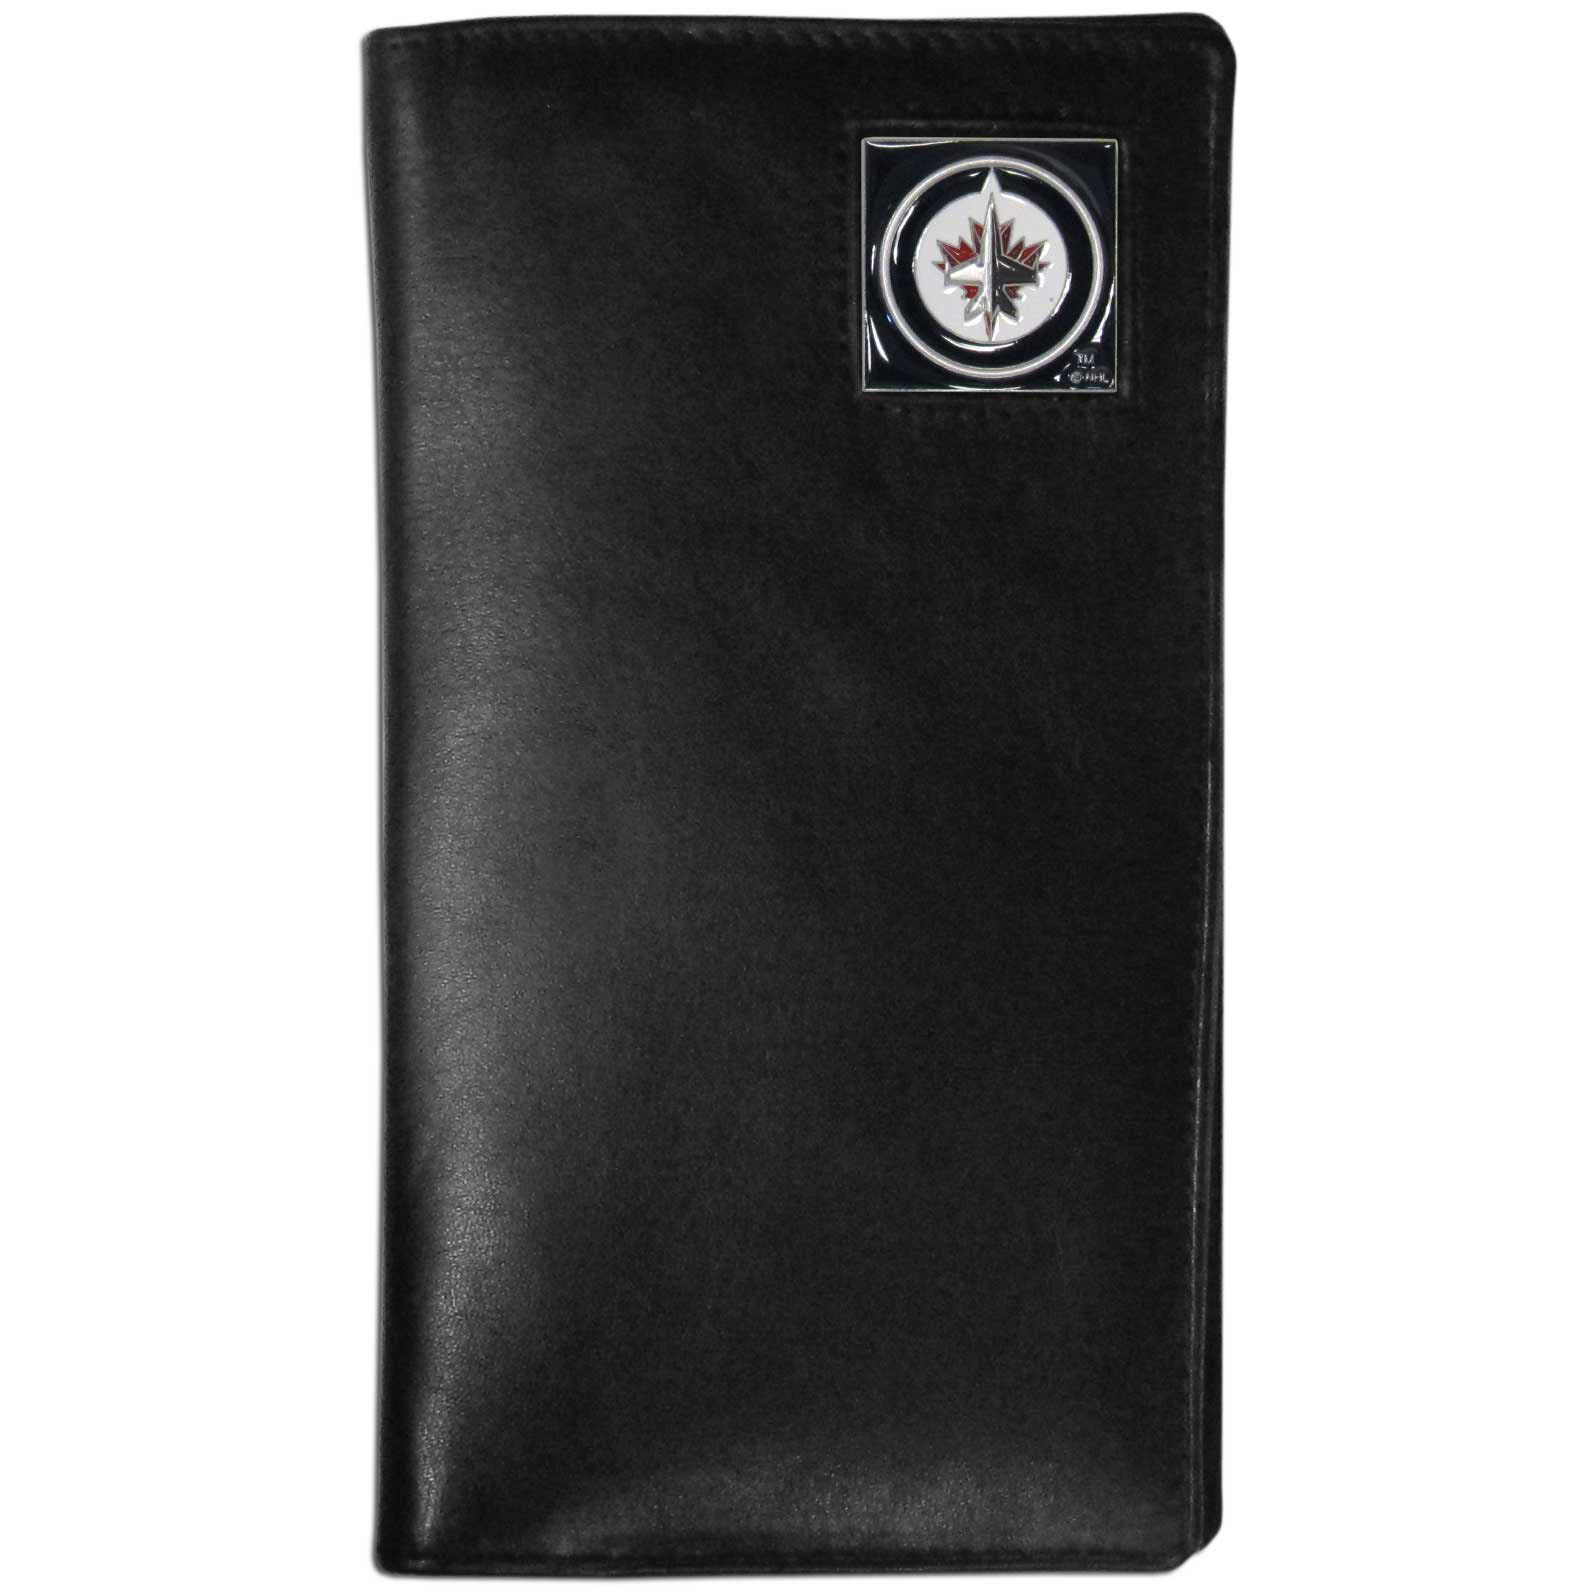 Winnipeg Jets Tall Leather Wallet - This Winnipeg Jets officially licensed tall leather wallet cover is made of high quality leather with a fully cast metal Winnipeg Jets emblem with enameled team Winnipeg Jets detail. The cover fits both side and top loaded checks and includes a large zippered pocket, windowed ID slot, numerous credit card slots and billfold pocket.